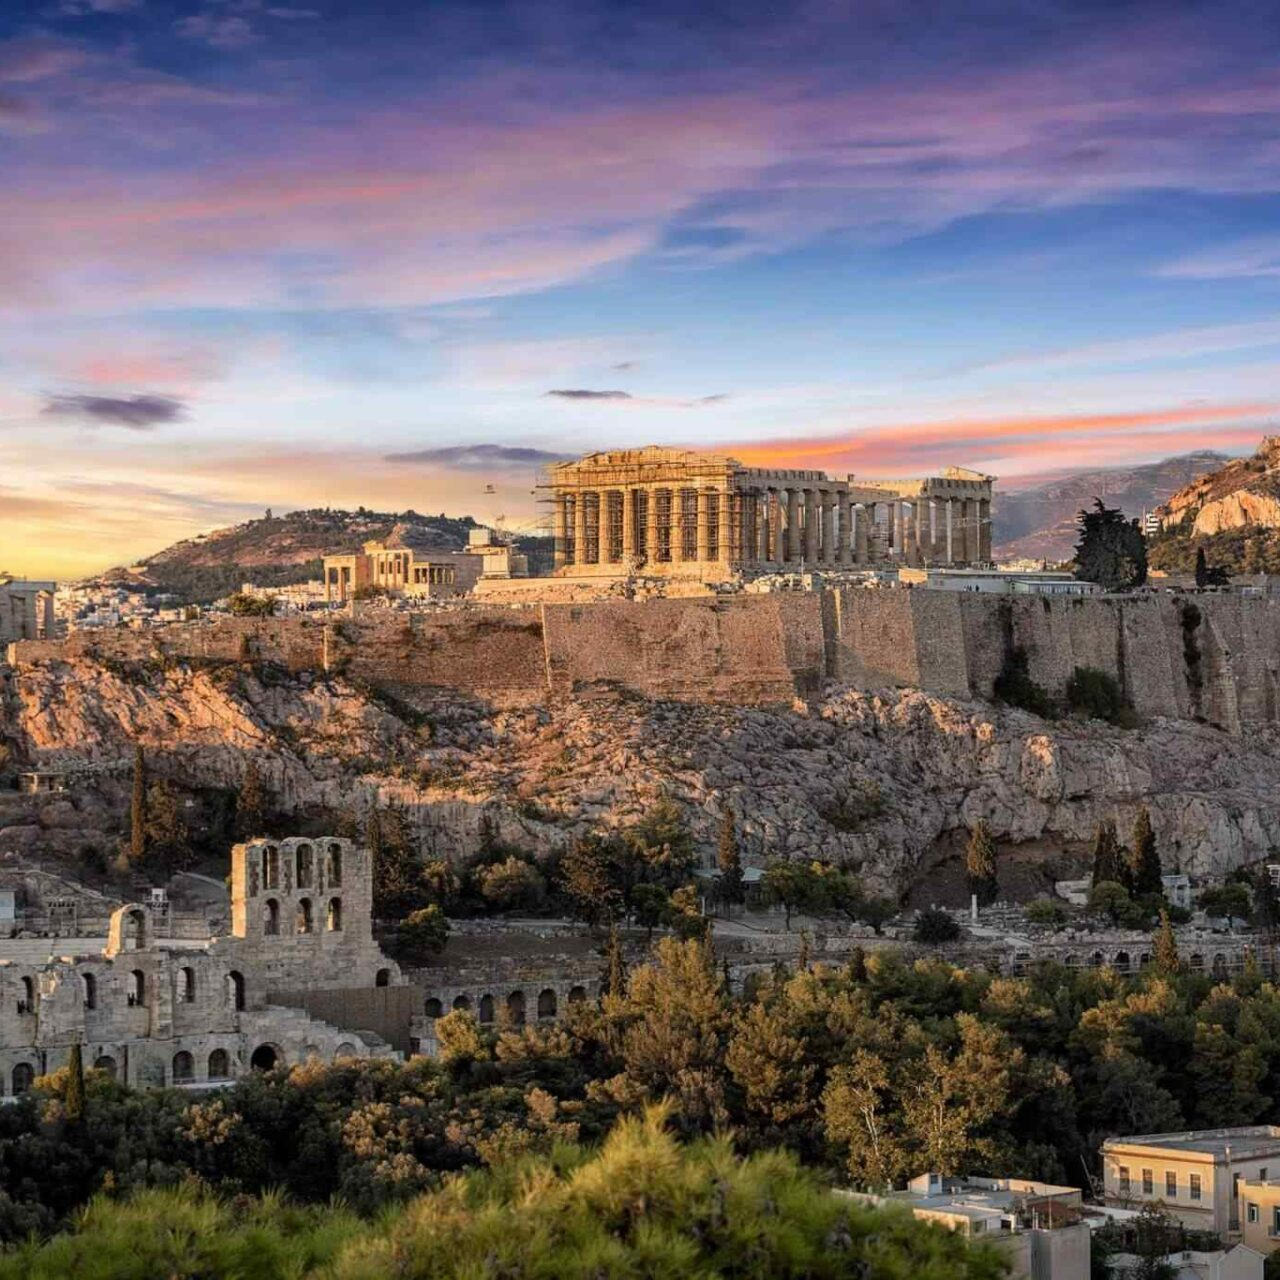 https://www.egyptravel4you.com/wp-content/uploads/2018/09/destination-athens-01-1280x1280.jpg